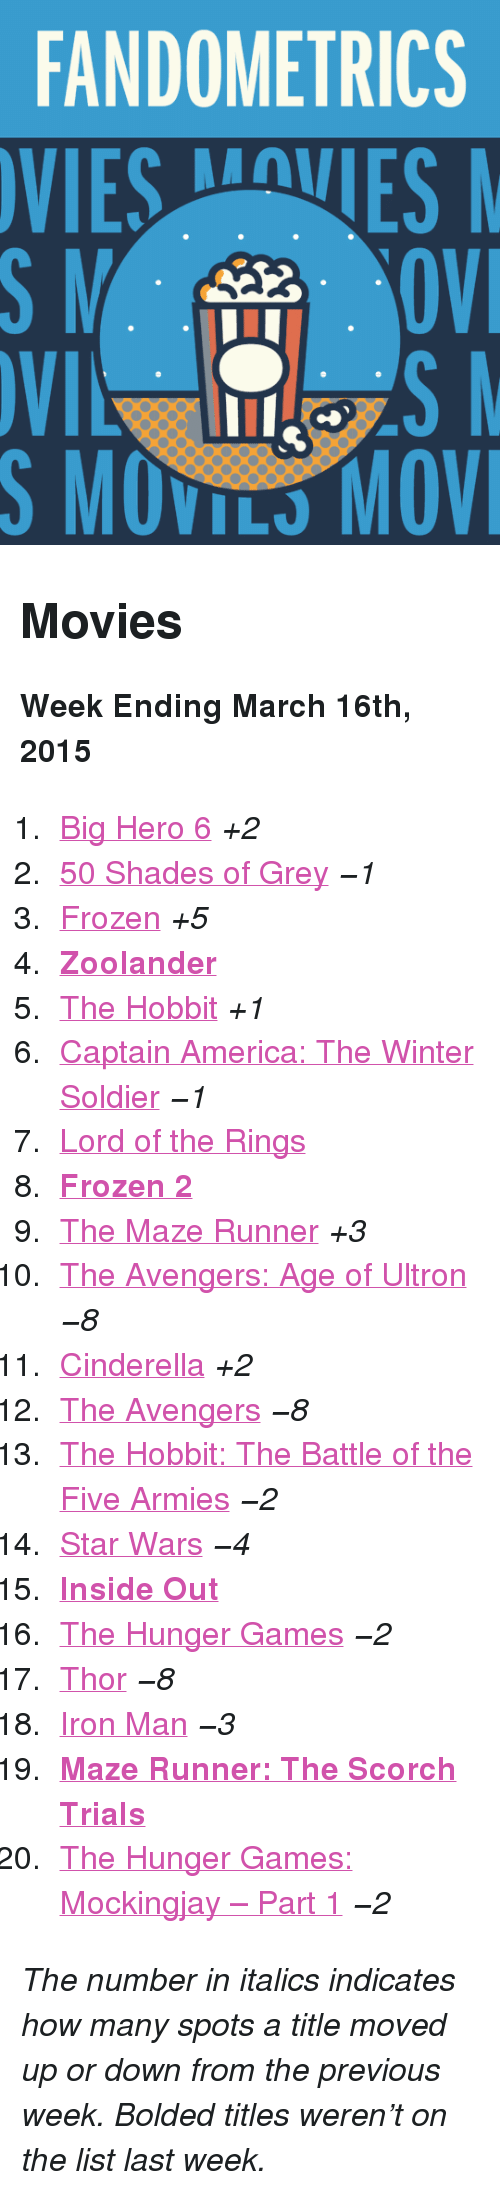 """Zoolander: FANDOMETRICS  VIESVES  S MOVILS MOV <h2>Movies</h2><p><b>Week Ending March 16th, 2015</b></p><ol><li><a href=""""http://www.tumblr.com/search/big%20hero%206"""">Big Hero 6</a> <i>+2</i></li><li><a href=""""http://www.tumblr.com/search/50%20shades%20of%20grey"""">50 Shades of Grey</a> <i>−1</i></li><li><a href=""""http://www.tumblr.com/search/frozen"""">Frozen</a> <i>+5</i></li><li><a href=""""http://www.tumblr.com/search/zoolander""""><b>Zoolander</b></a></li><li><a href=""""http://www.tumblr.com/search/the%20hobbit"""">The Hobbit</a> <i>+1</i></li><li><a href=""""http://www.tumblr.com/search/captain%20america"""">Captain America: The Winter Soldier</a> <i>−1</i></li><li><a href=""""http://www.tumblr.com/search/lotr"""">Lord of the Rings</a></li><li><a href=""""http://www.tumblr.com/search/frozen%202""""><b>Frozen 2</b></a></li><li><a href=""""http://www.tumblr.com/search/the%20maze%20runner"""">The Maze Runner</a> <i>+3</i></li><li><a href=""""http://www.tumblr.com/search/age%20of%20ultron"""">The Avengers: Age of Ultron</a> <i>−8</i></li><li><a href=""""http://www.tumblr.com/search/cinderella"""">Cinderella</a> <i>+2</i></li><li><a href=""""http://www.tumblr.com/search/avengers"""">The Avengers</a> <i>−8</i></li><li><a href=""""http://www.tumblr.com/search/botfa"""">The Hobbit: The Battle of the Five Armies</a> <i>−2</i></li><li><a href=""""http://www.tumblr.com/search/star%20wars"""">Star Wars</a> <i>−4</i></li><li><a href=""""http://www.tumblr.com/search/inside%20out""""><b>Inside Out</b></a></li><li><a href=""""http://www.tumblr.com/search/the%20hunger%20games"""">The Hunger Games</a> <i>−2</i></li><li><a href=""""http://www.tumblr.com/search/thor"""">Thor</a> <i>−8</i></li><li><a href=""""http://www.tumblr.com/search/iron%20man"""">Iron Man</a> <i>−3</i></li><li><a href=""""http://www.tumblr.com/search/the%20scorch%20trials""""><b>Maze Runner: The Scorch Trials</b></a></li><li><a href=""""http://www.tumblr.com/search/mockingjay"""">The Hunger Games: Mockingjay – Part 1</a> <i>−2</i></li></ol><p><i>The number in italics indicates how many spots a title moved up or dow"""